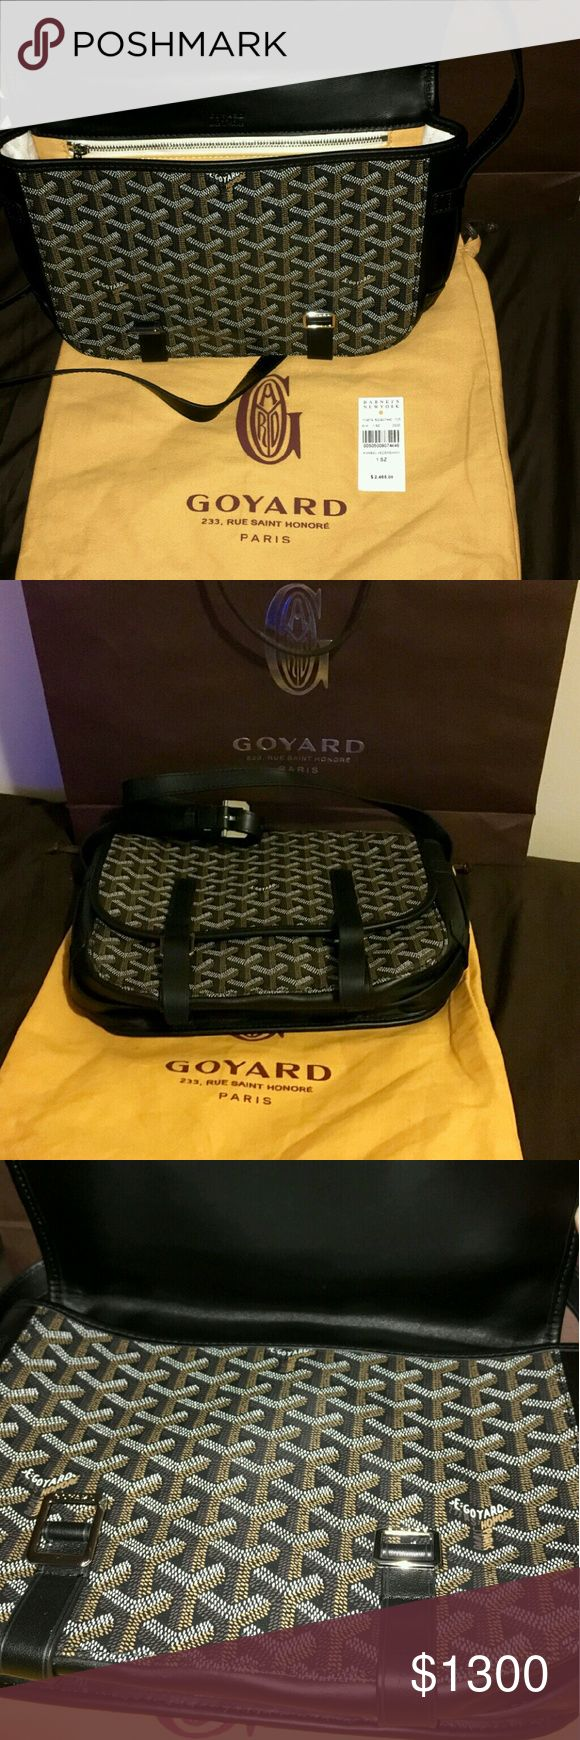 Goyard Messenger Bag In new condition, comes with dustbag and authentication card Goyard Bags